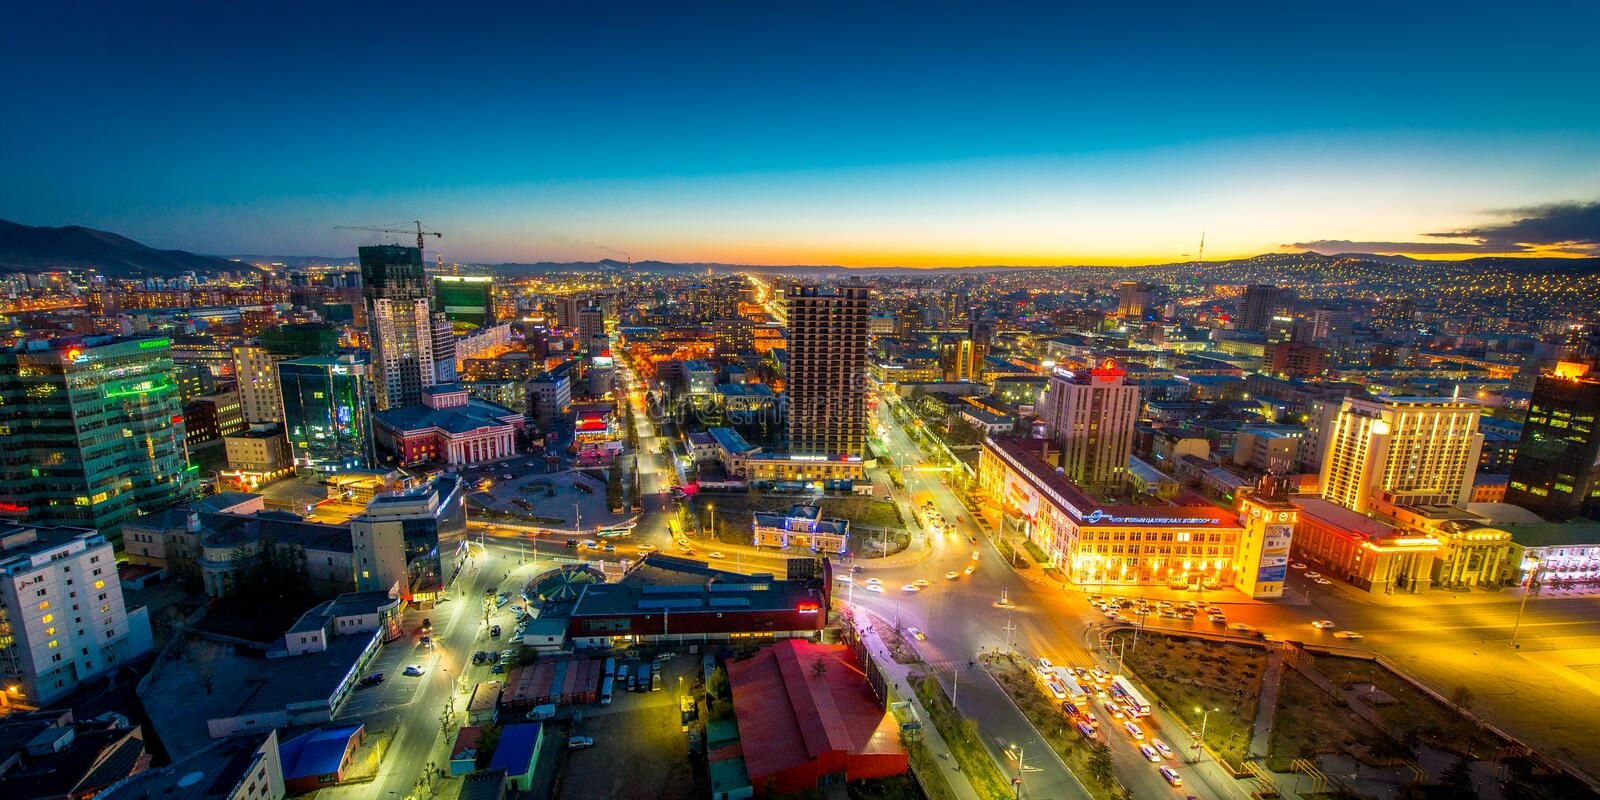 Ulaan-Baator, Mongolia - May 16, 2015: Night view at the streets of the capital of Mongolia. royalty free stock photos